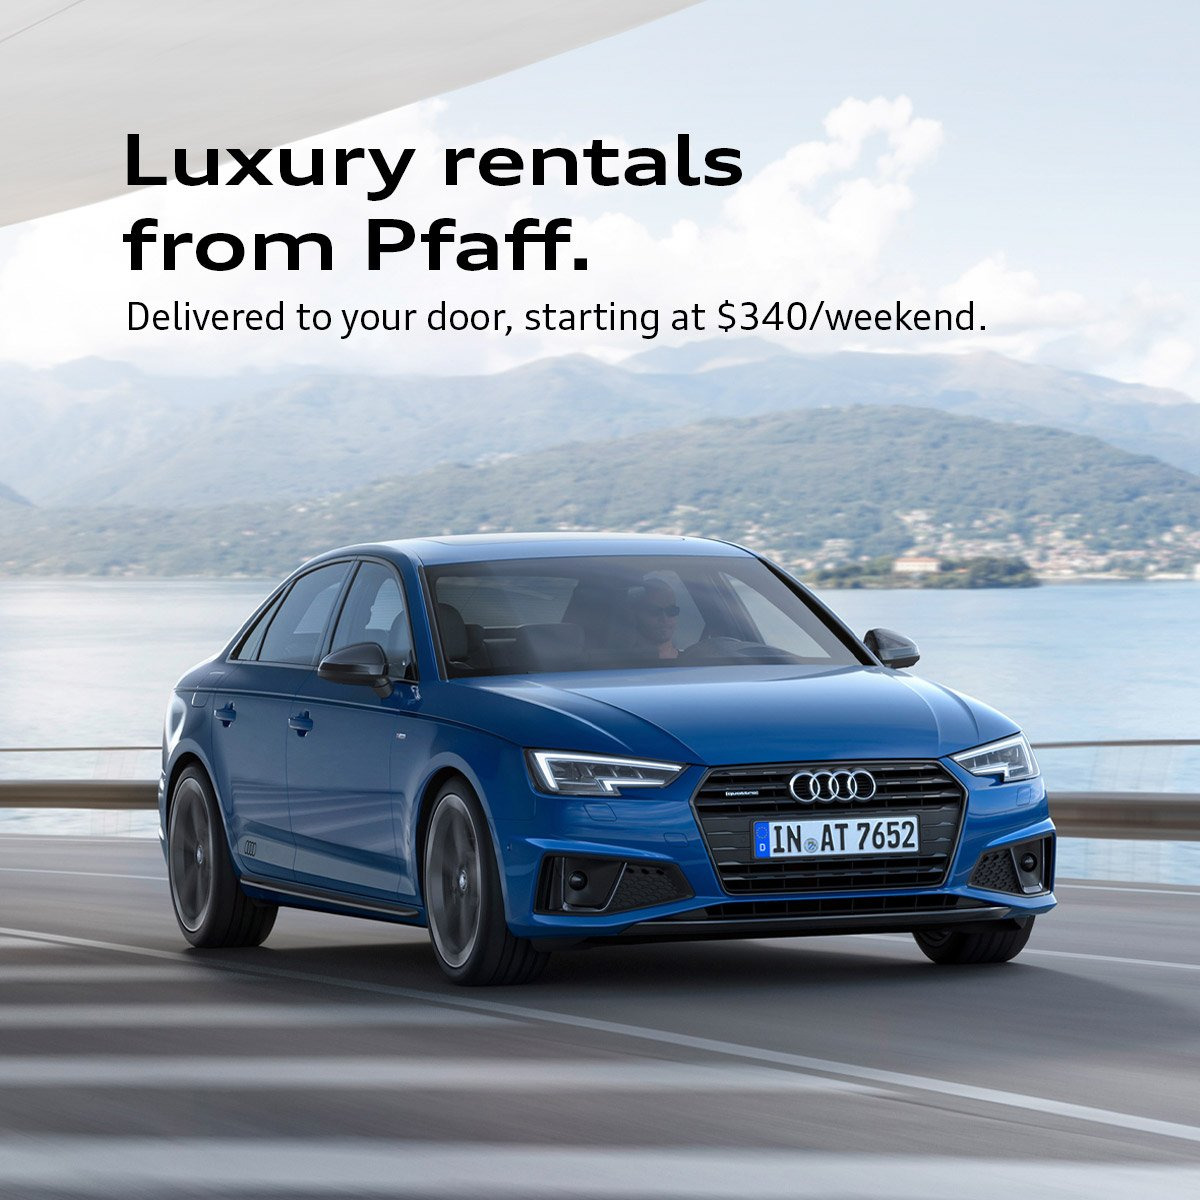 Luxury Rentals from Pfaff